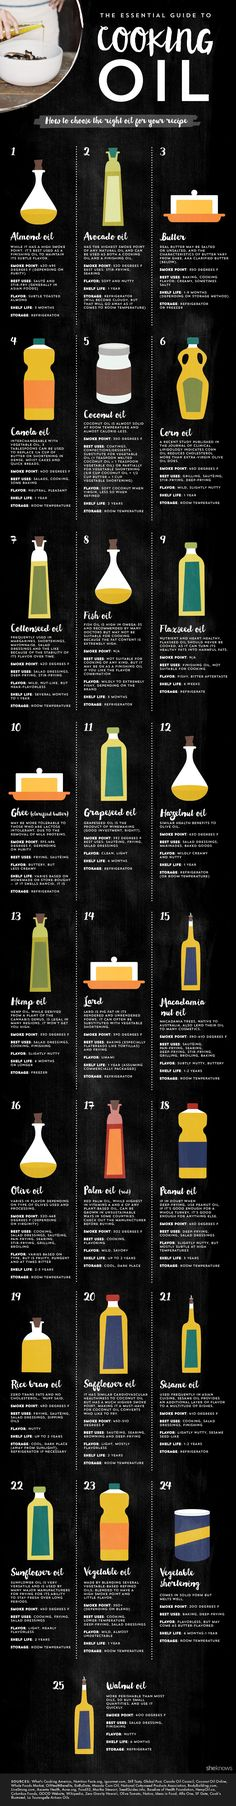 essential guide to cooking oil infographic. Tips on how to choose the right cooking oil for your recipe.The essential guide to cooking oil infographic. Tips on how to choose the right cooking oil for your recipe. Types Of Cooking Oil, Cooking 101, Cooking Recipes, Cooking Videos, Cooking Hacks, Cooking Classes, Healthy Cooking Oil, Cooking Light, Best Cooking Oil